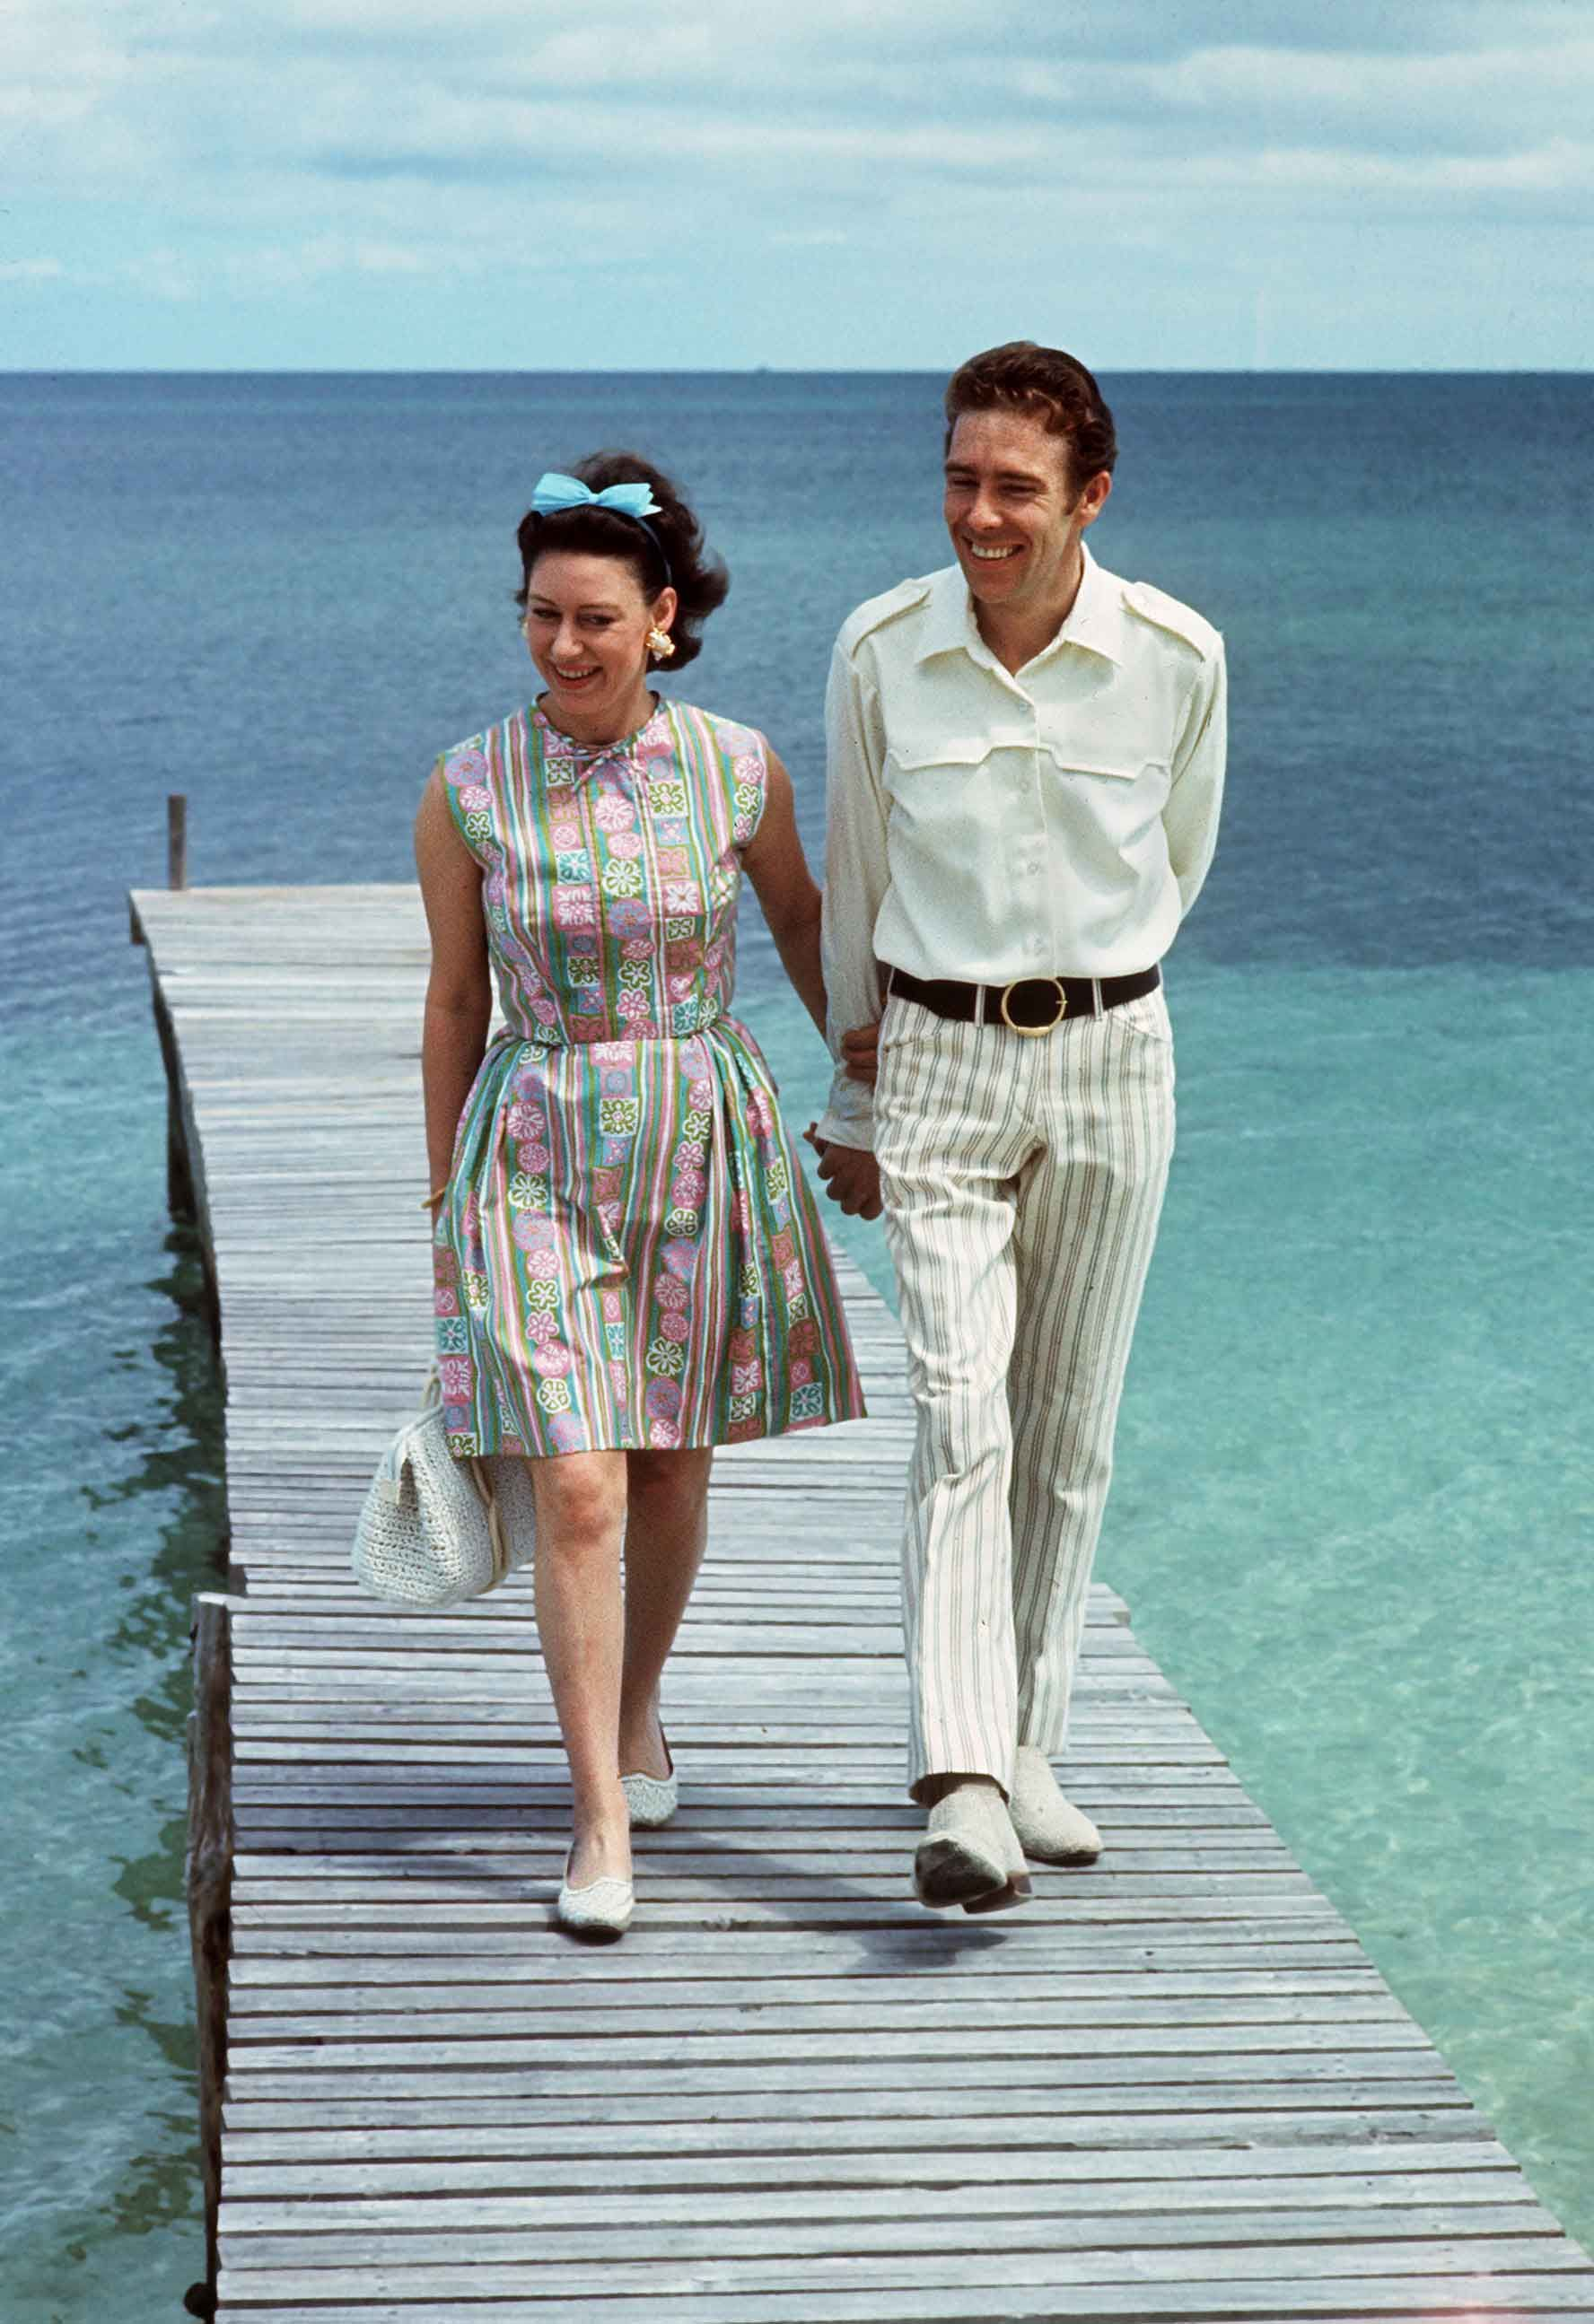 Princess Margaret S Life In Pictures Beautiful Photos Of Queen Elizabeth Sister